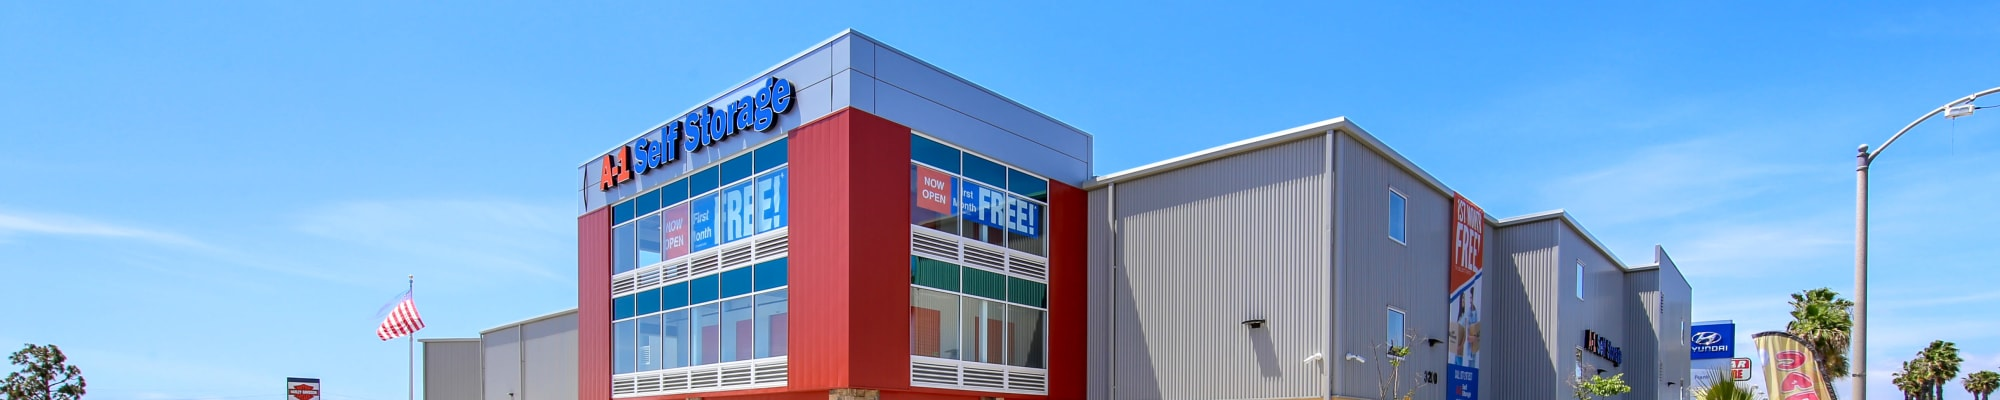 Storage features at A-1 Self Storage in San Diego, California